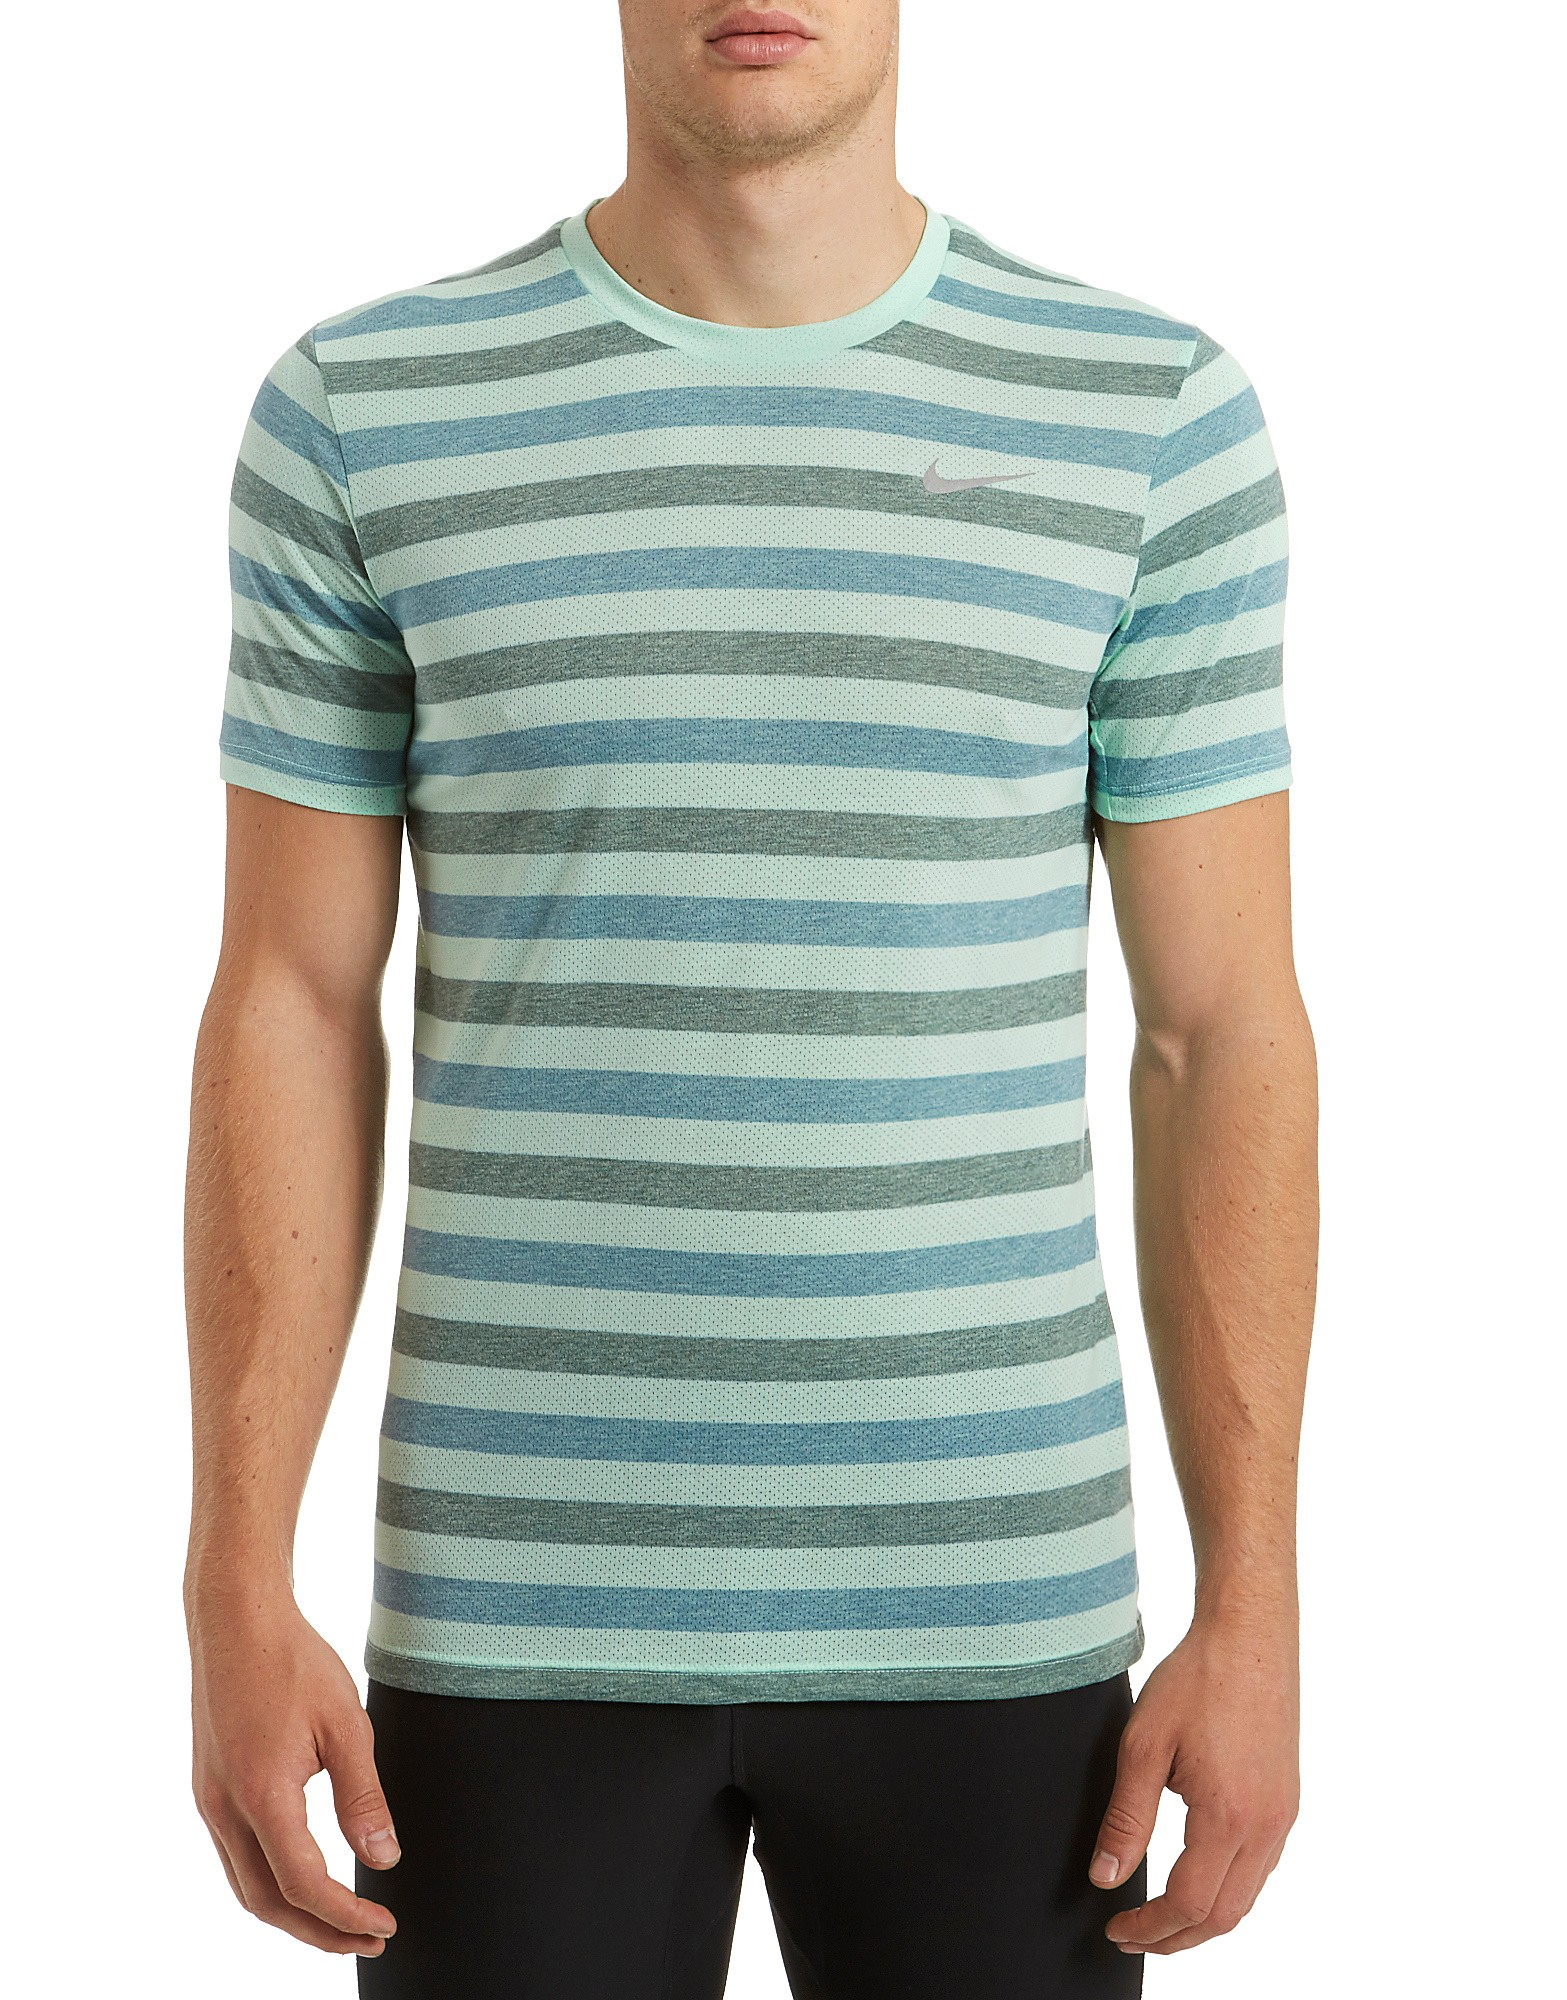 Nike Dri-FIT Tailwind Stripe T-Shirt product image